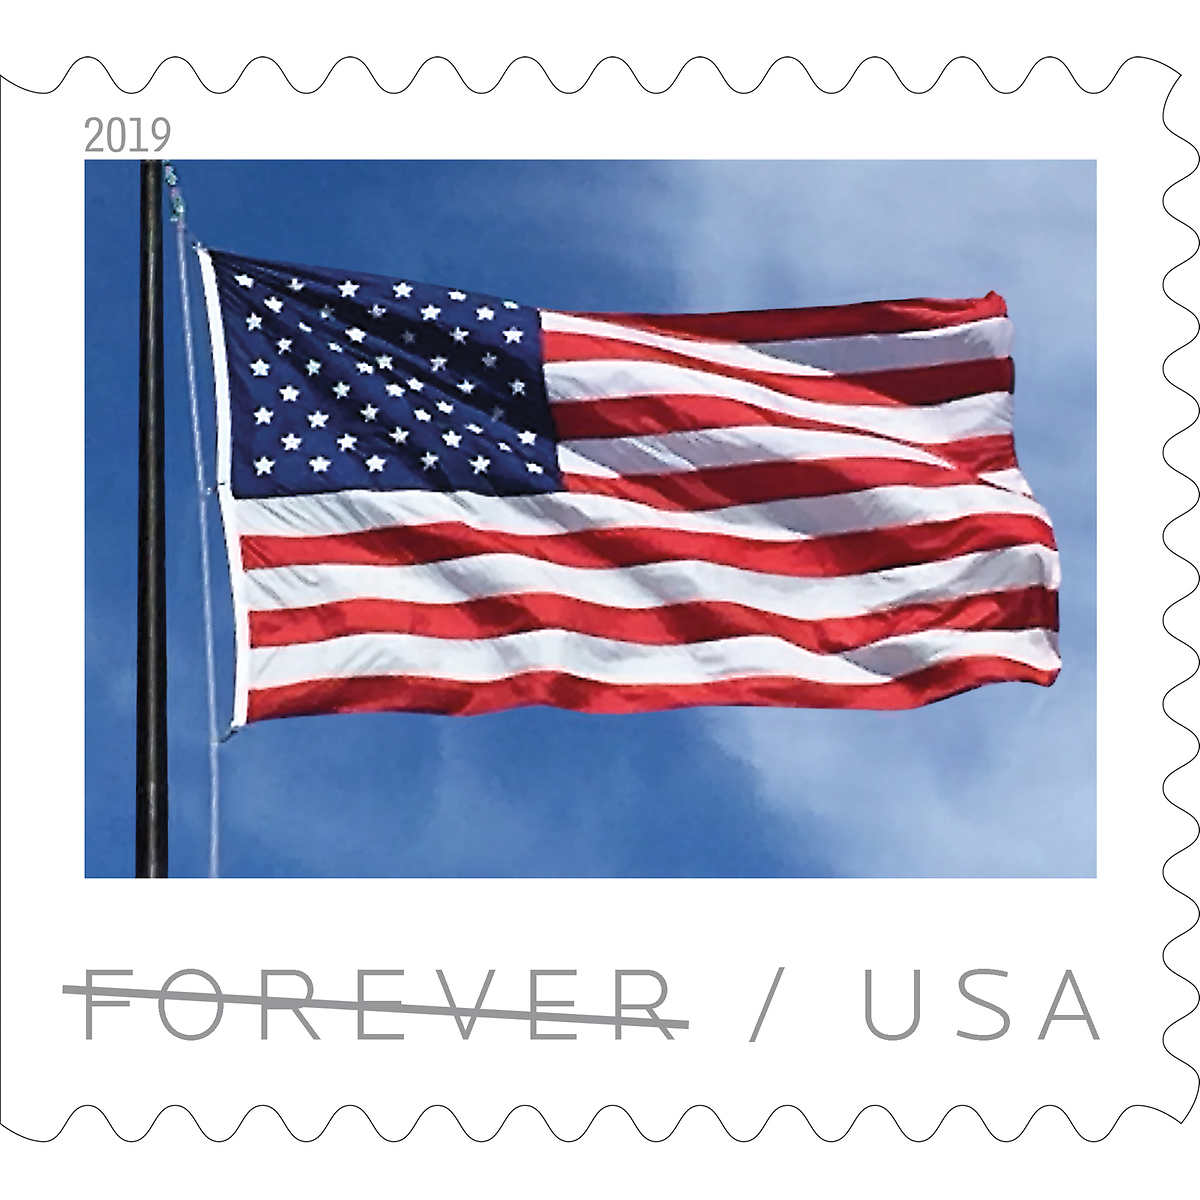 USPS® First-Class FOREVER® Stamps, 100 ct